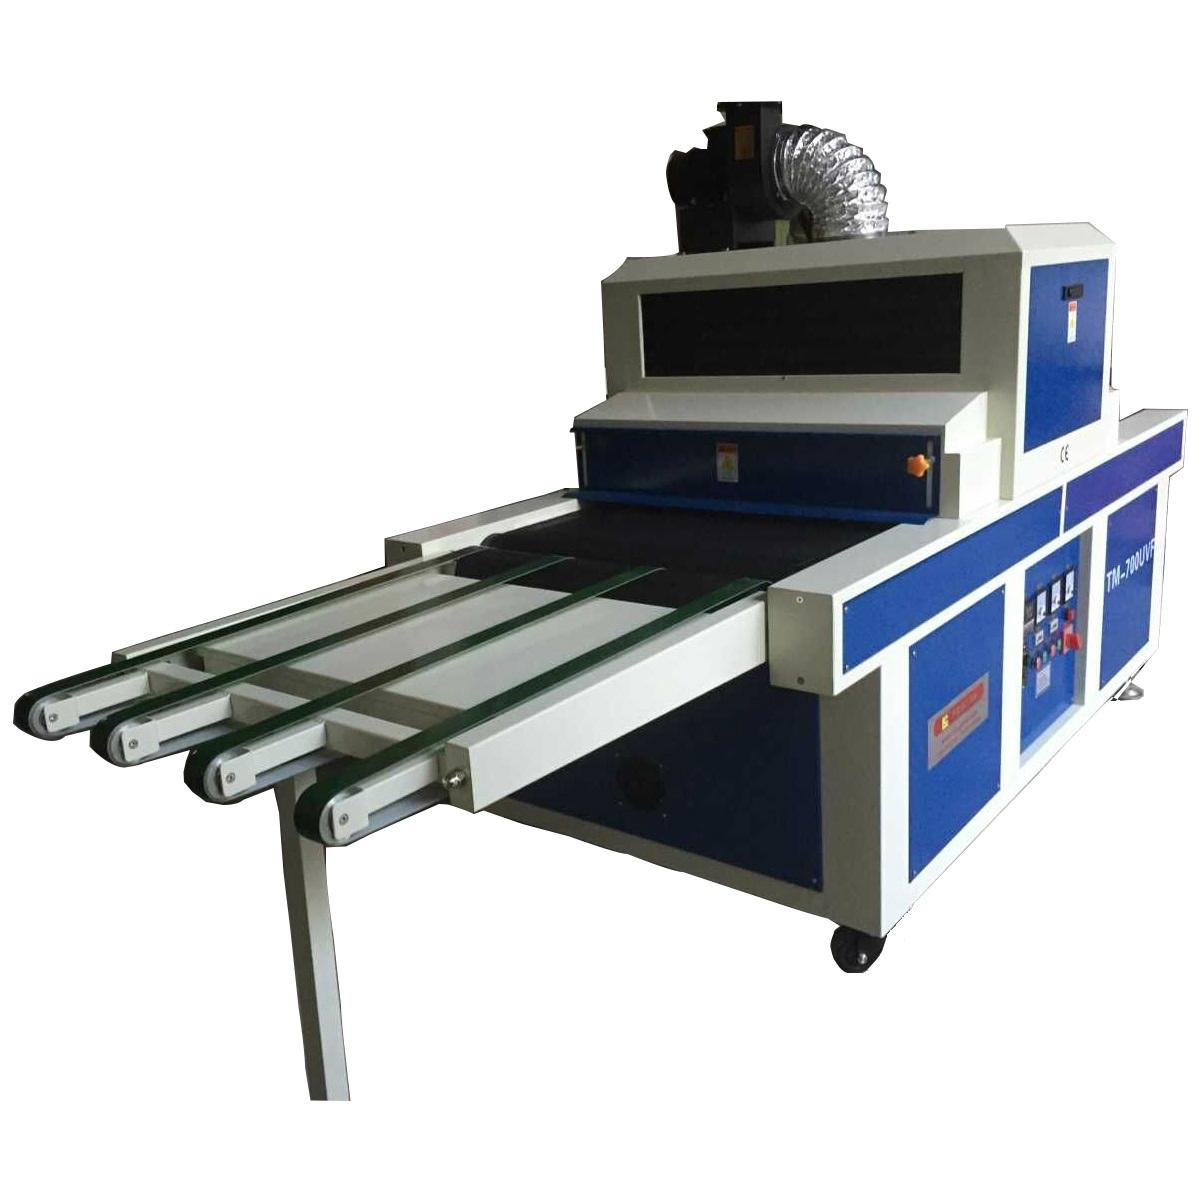 Uv Curing Machine : High speed uv curing system manufacter for heidelberg